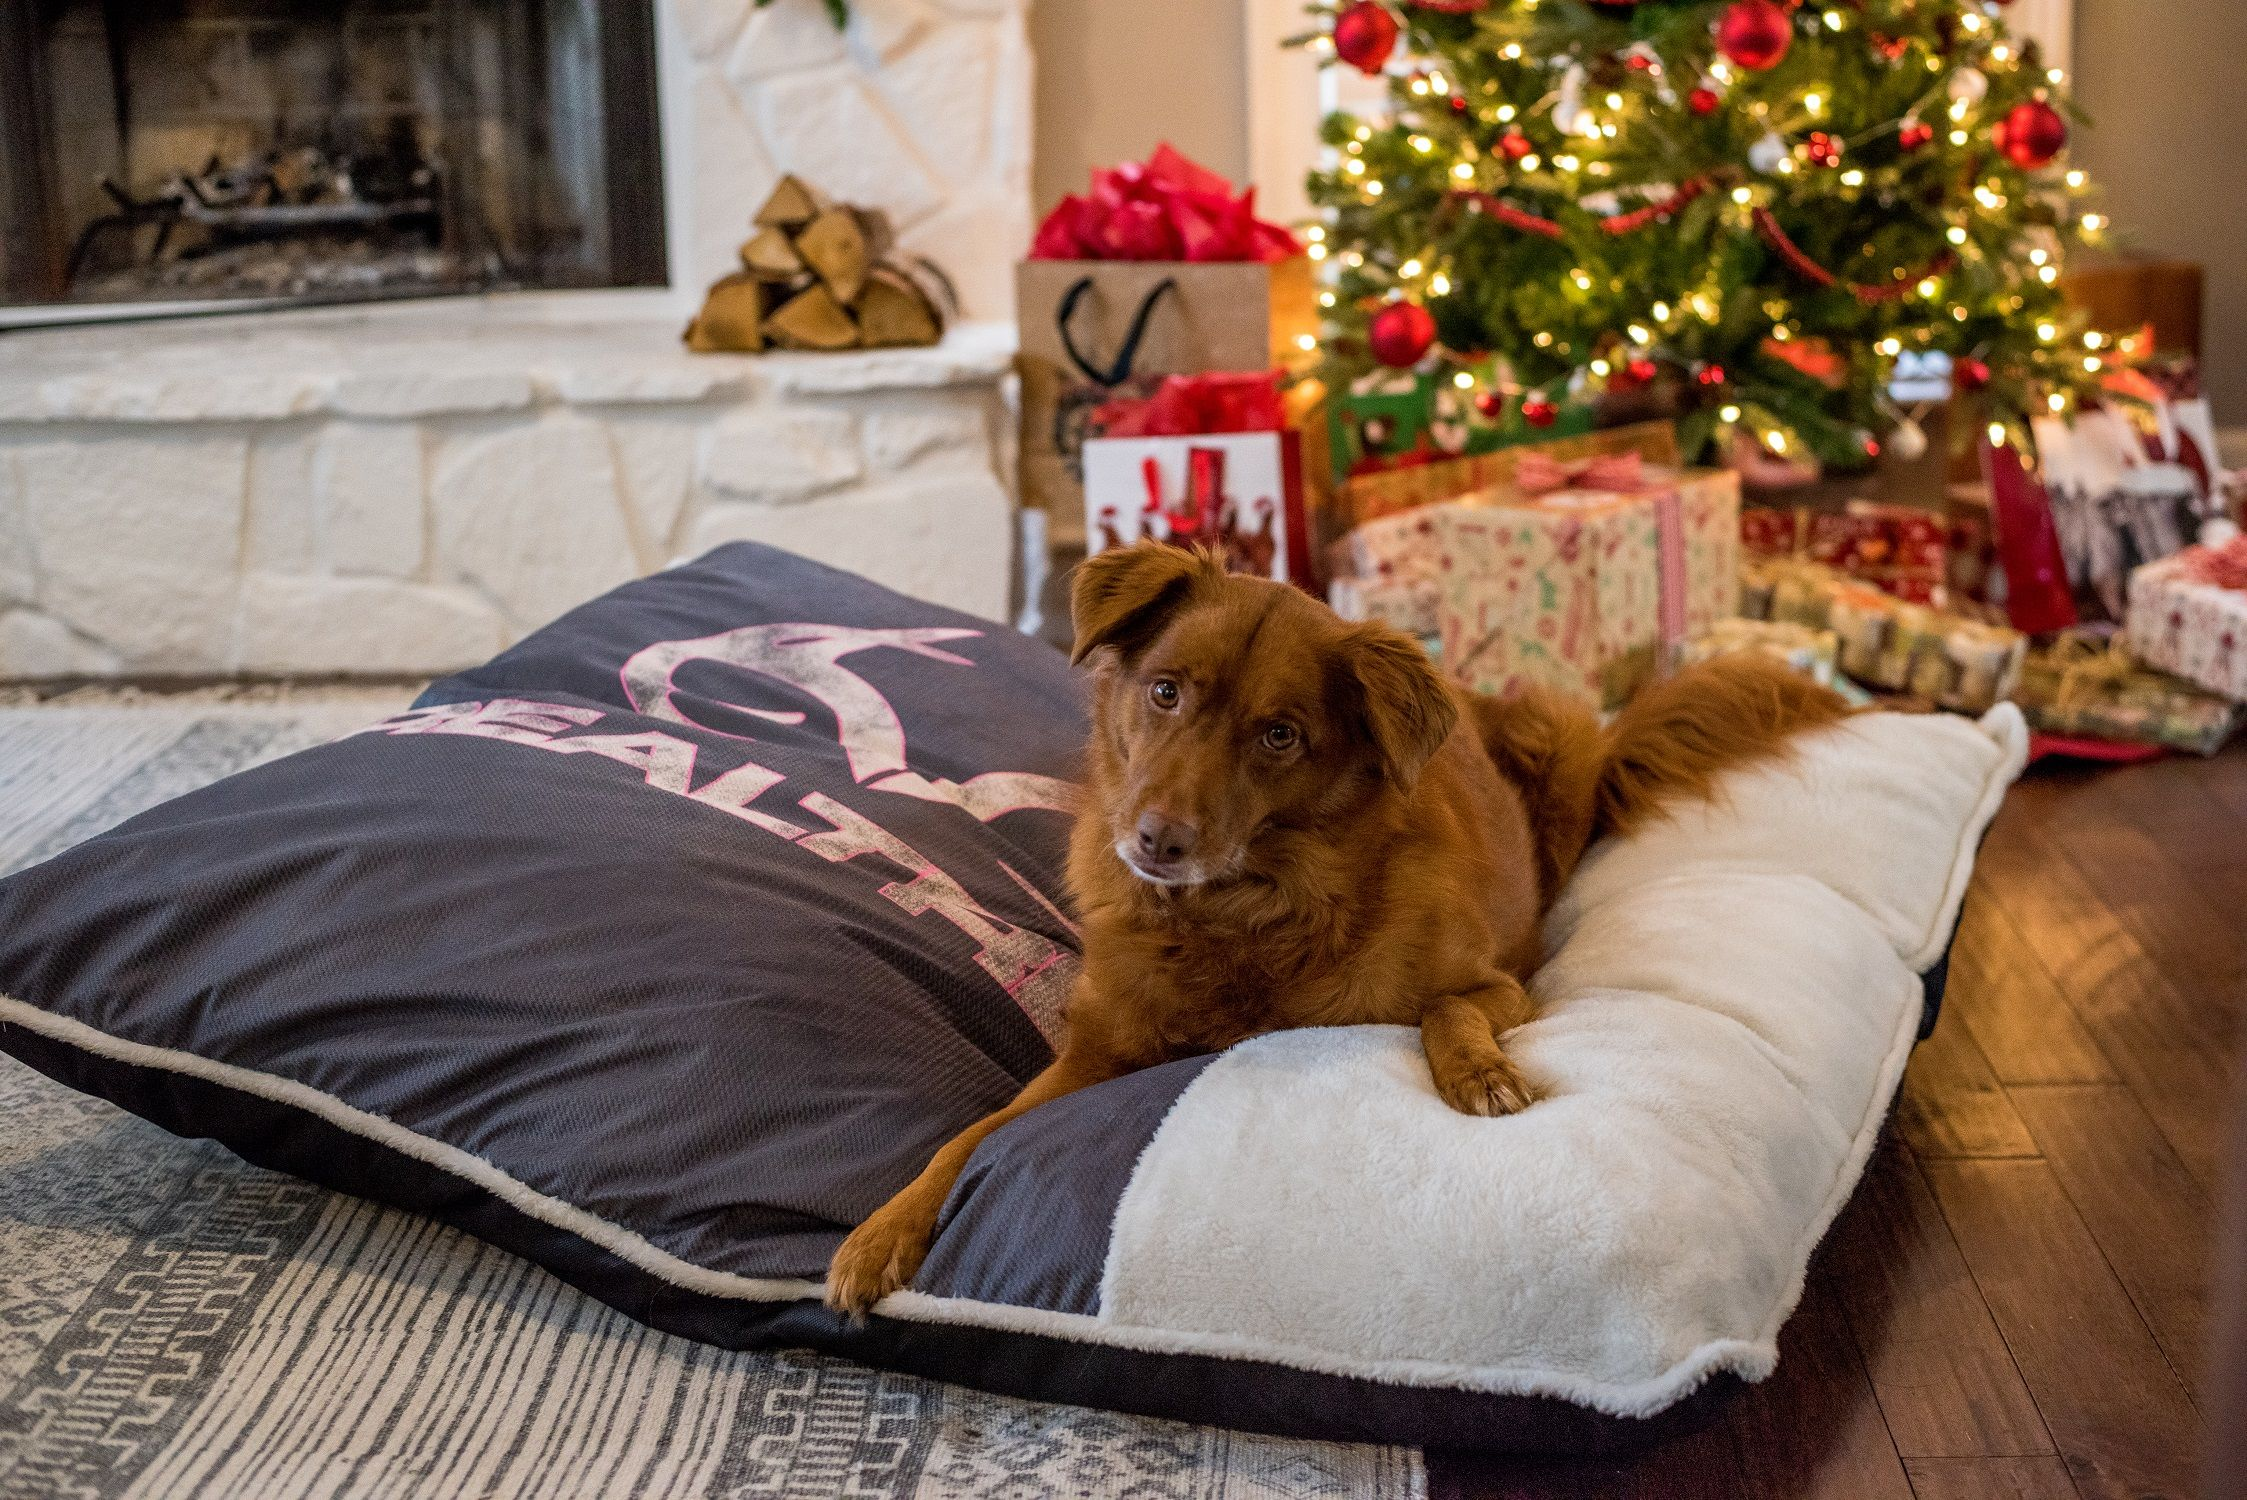 Large Realtree dog beds    tons of colors and patterns   Dog bed ...